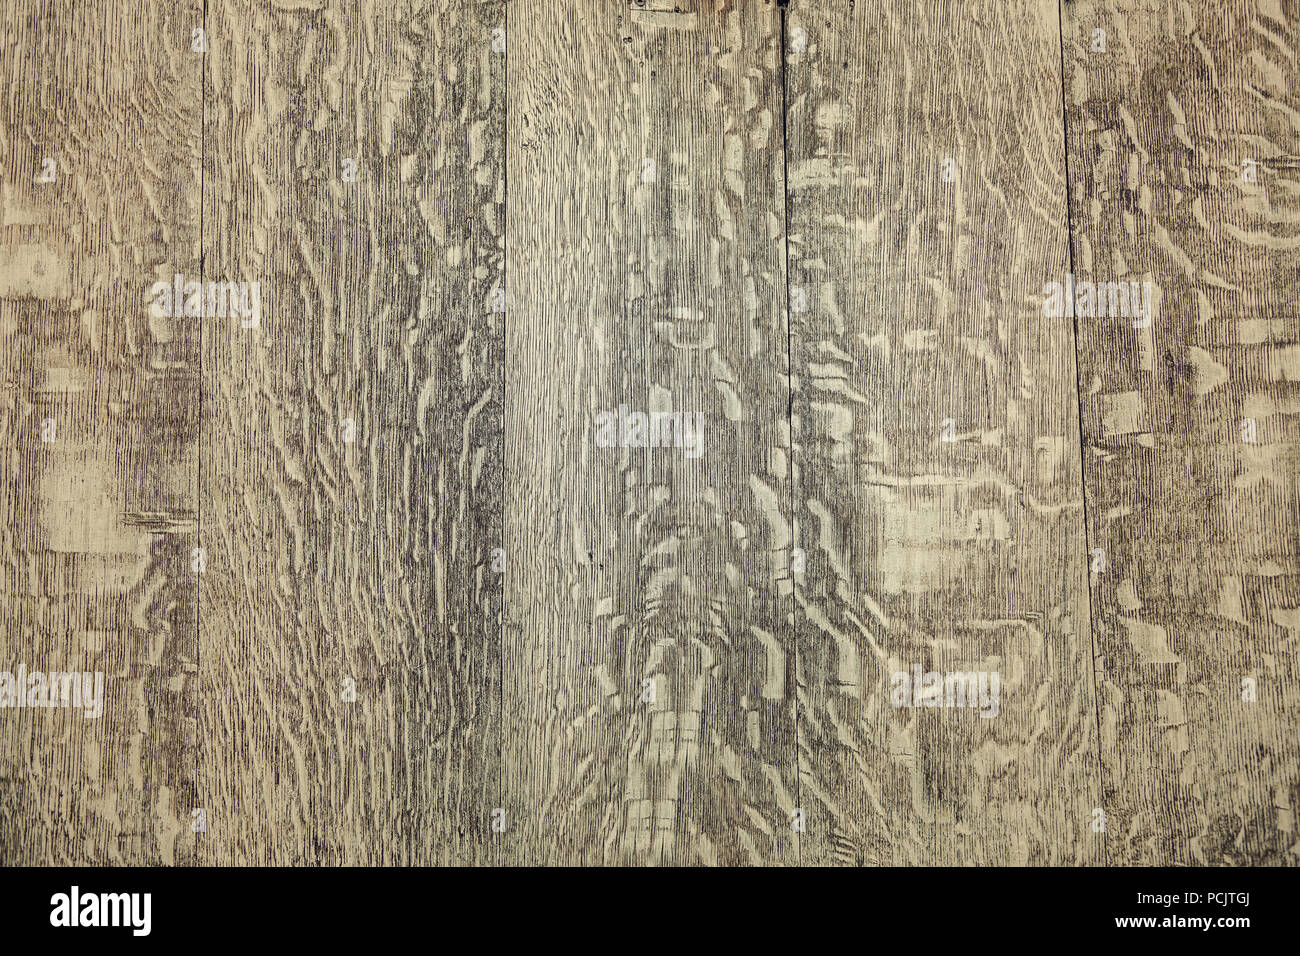 Wood texture. Close up of the vintage wooden texture of the old painted planks. - Stock Image